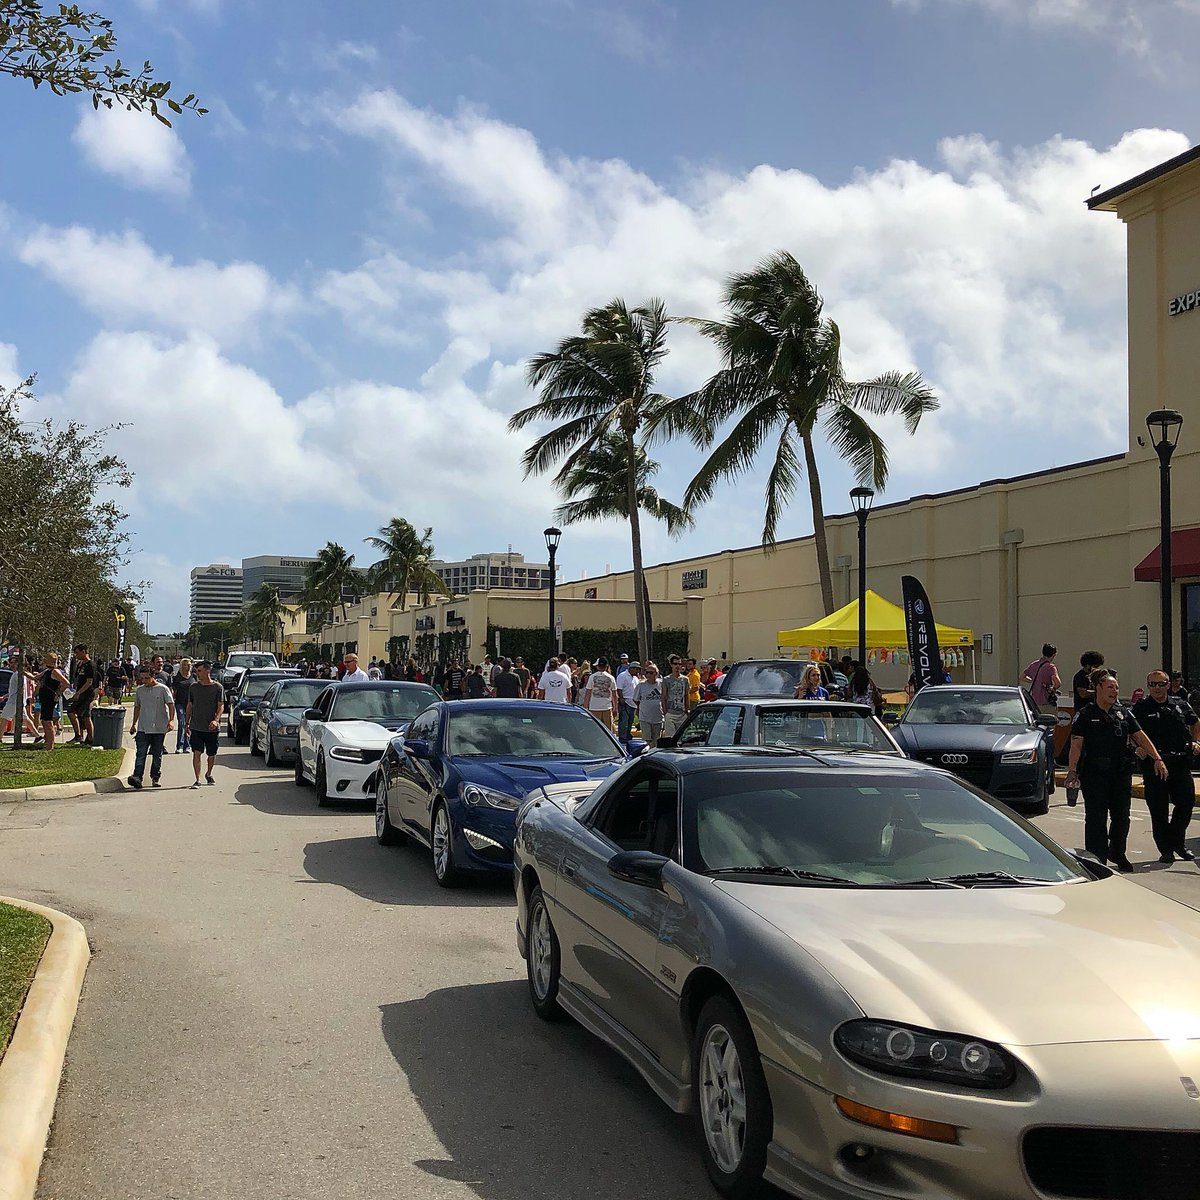 Exoticars Hashtag On Twitter - Car show palm beach outlets